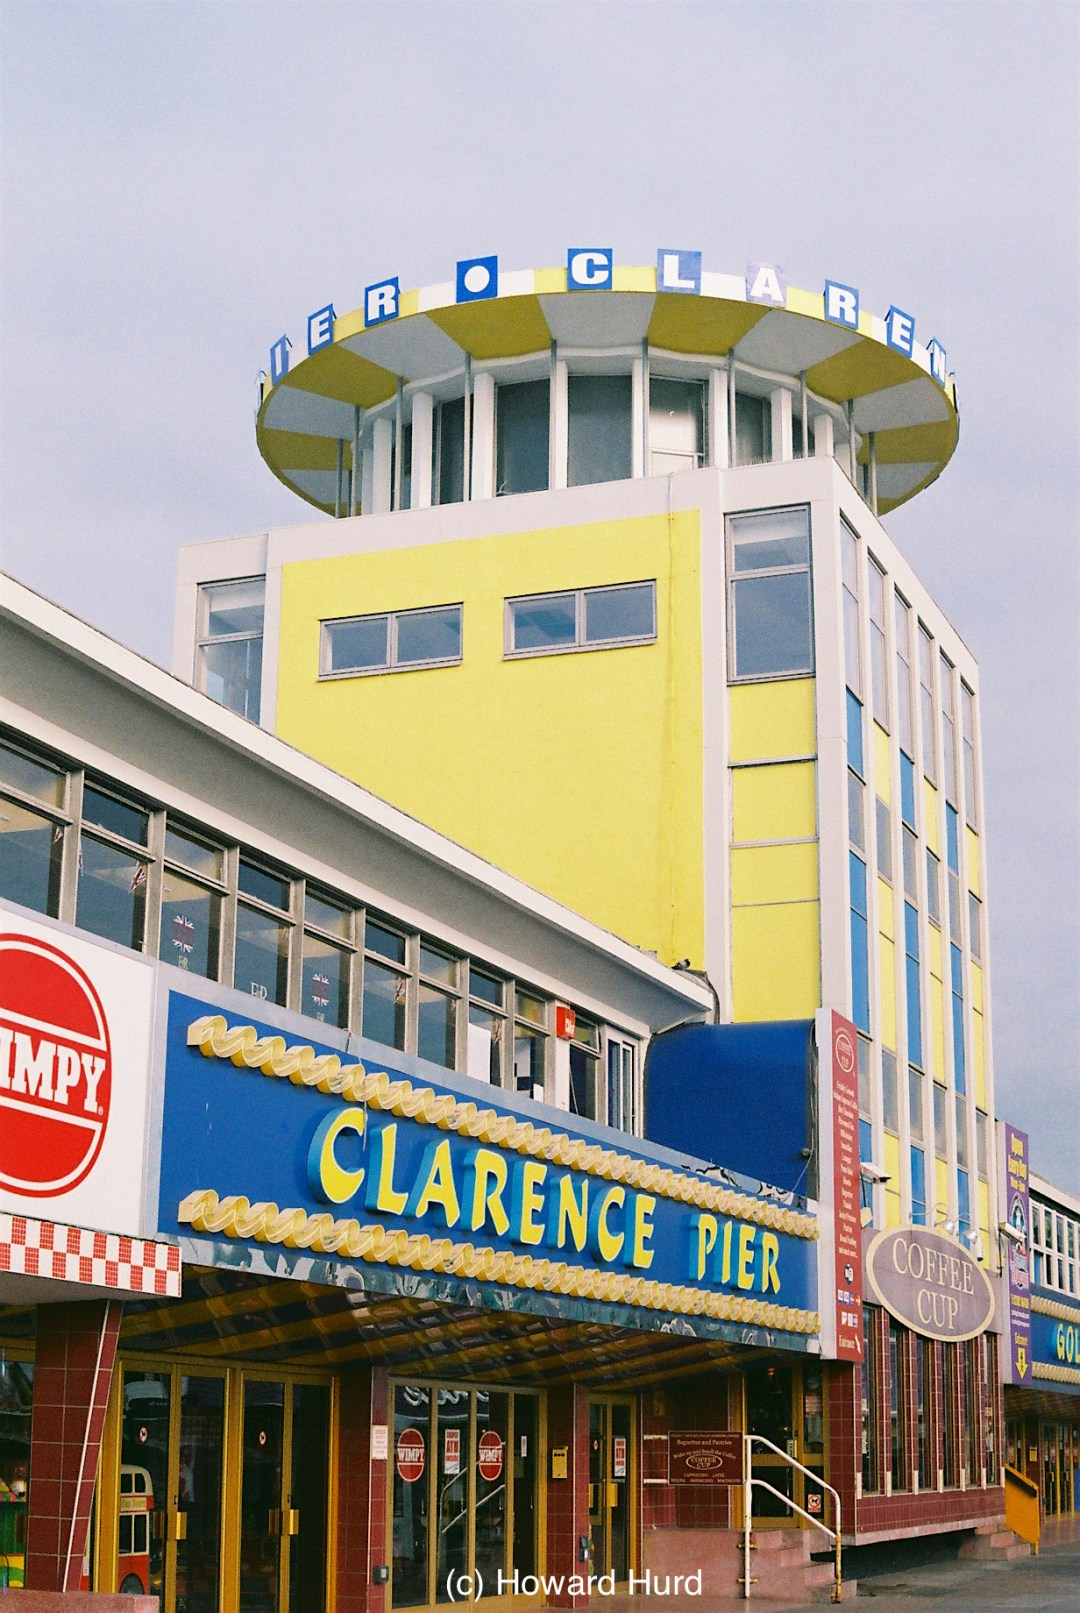 Clarence Pier in Southsea, UK - taken with Fed4 and Agfa VistaPlus at ISO200